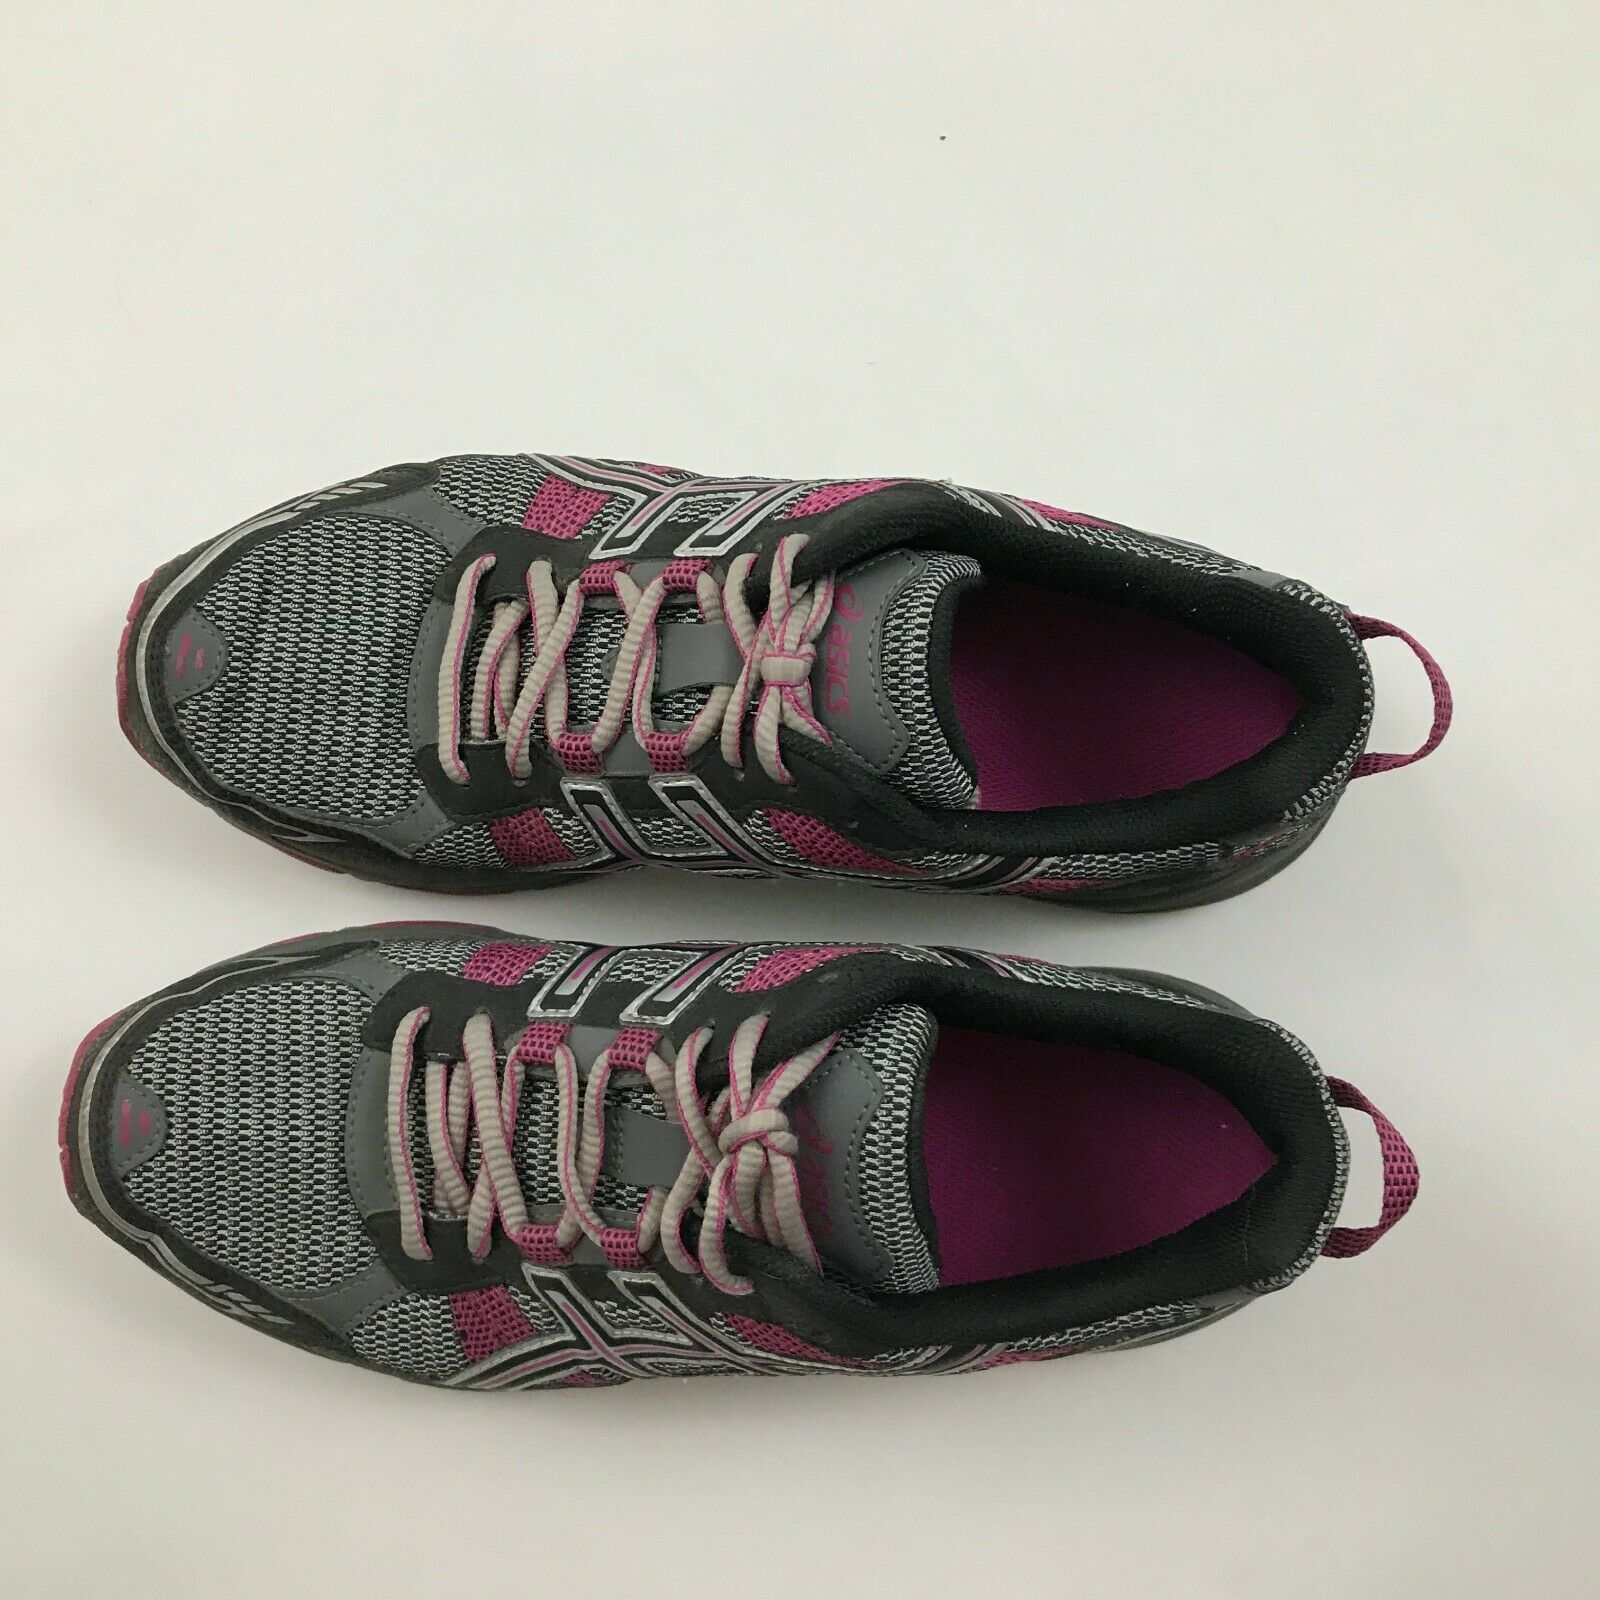 Asics Gel Venture 4 Womens Size 9.5 Running Shoes Gray Pink Sneakers Mid Lace Up